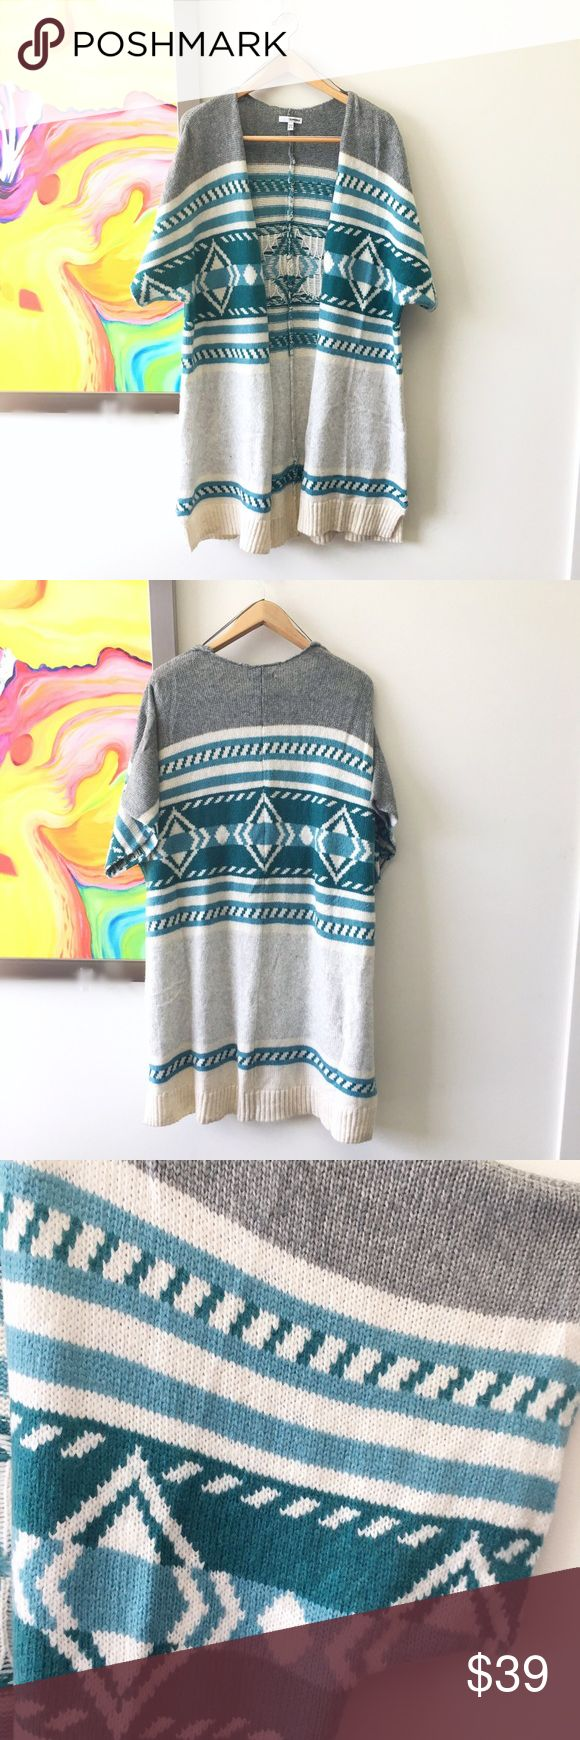 SONOMA Southwestern Long Open Sweater Never worn. Great for layering. Buttery soft material with a southwestern pattern in cream, teal and gray. Fits many sizes and can be easily belted or thrown over another top. So cozy! Sonoma Sweaters